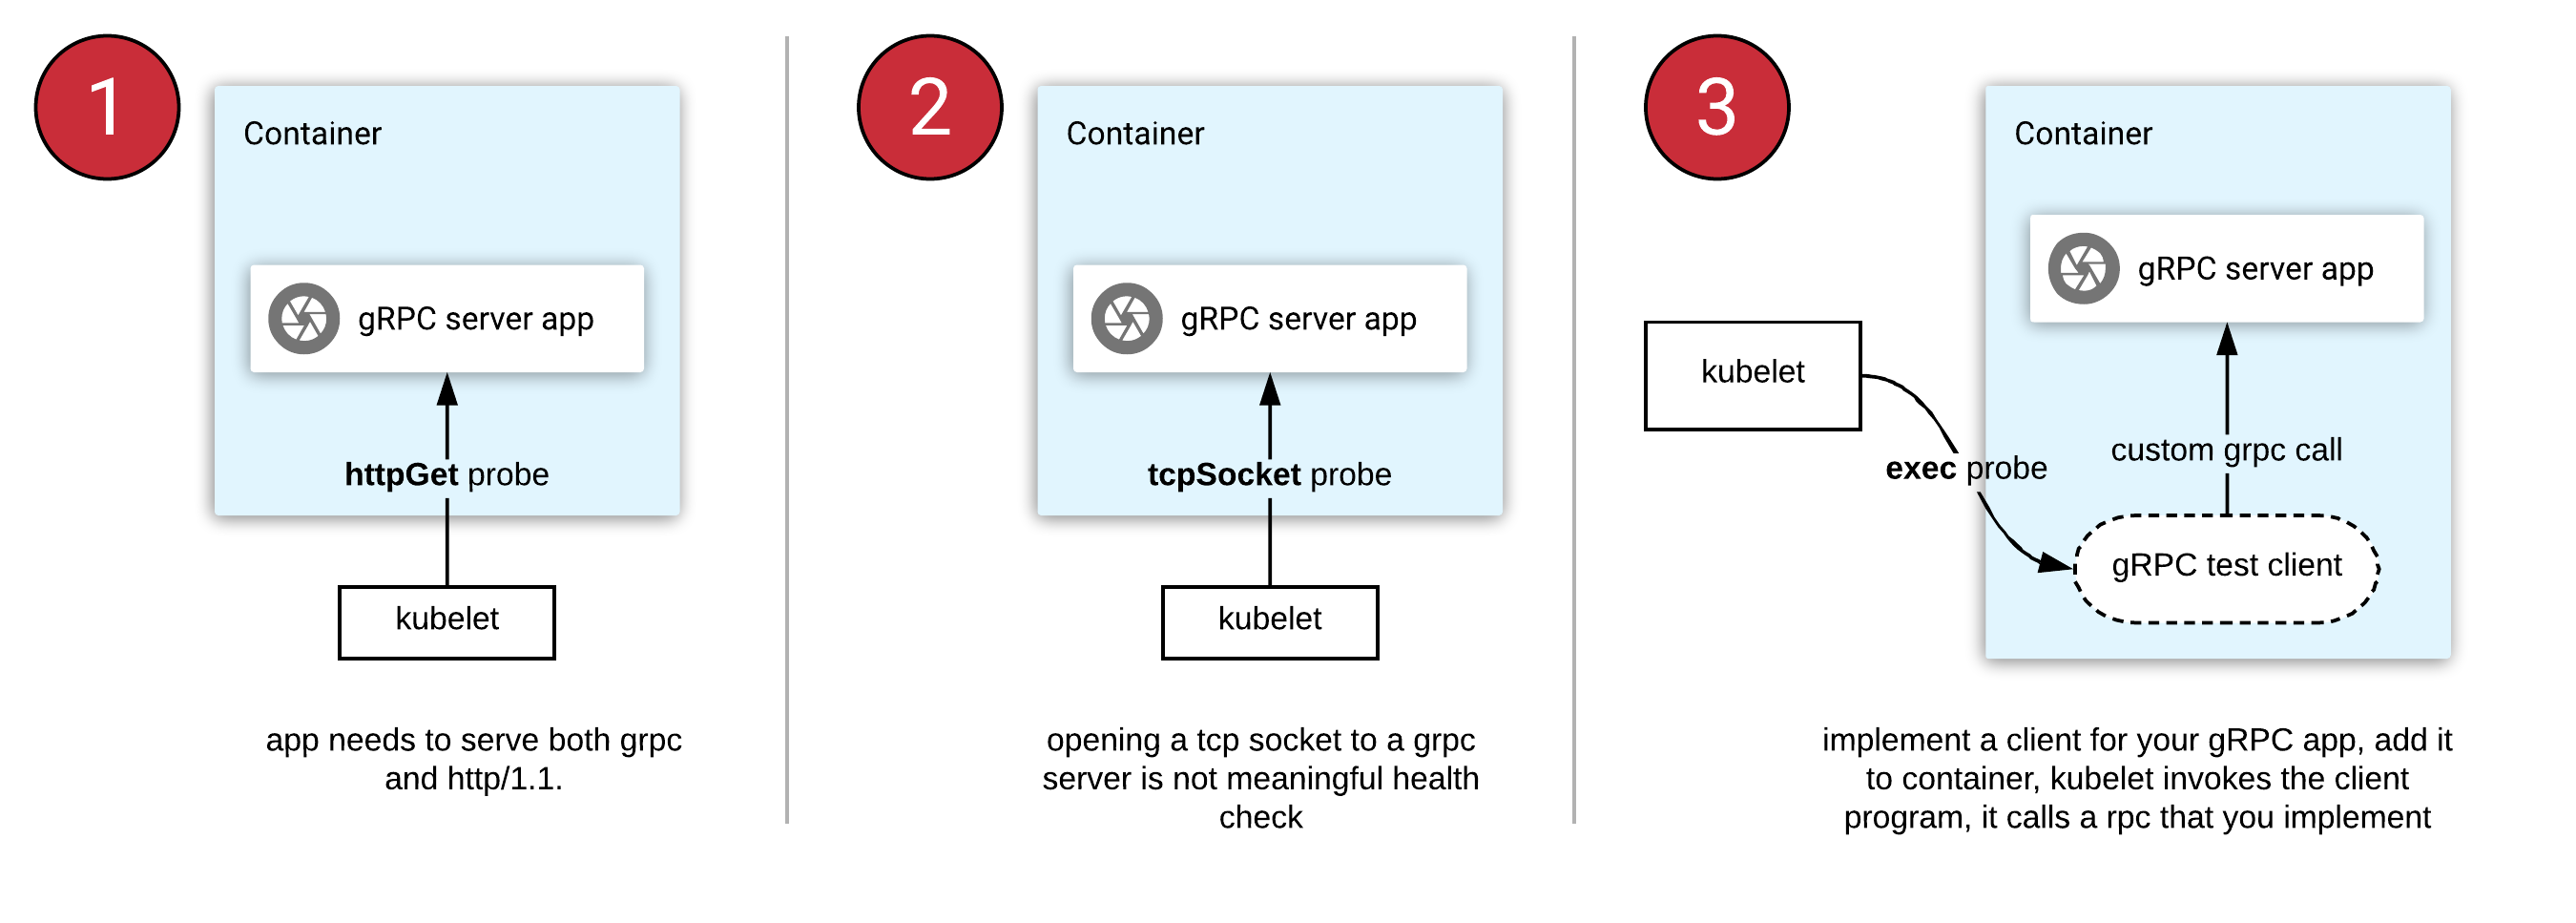 Health checking gRPC servers on Kubernetes - Kubernetes